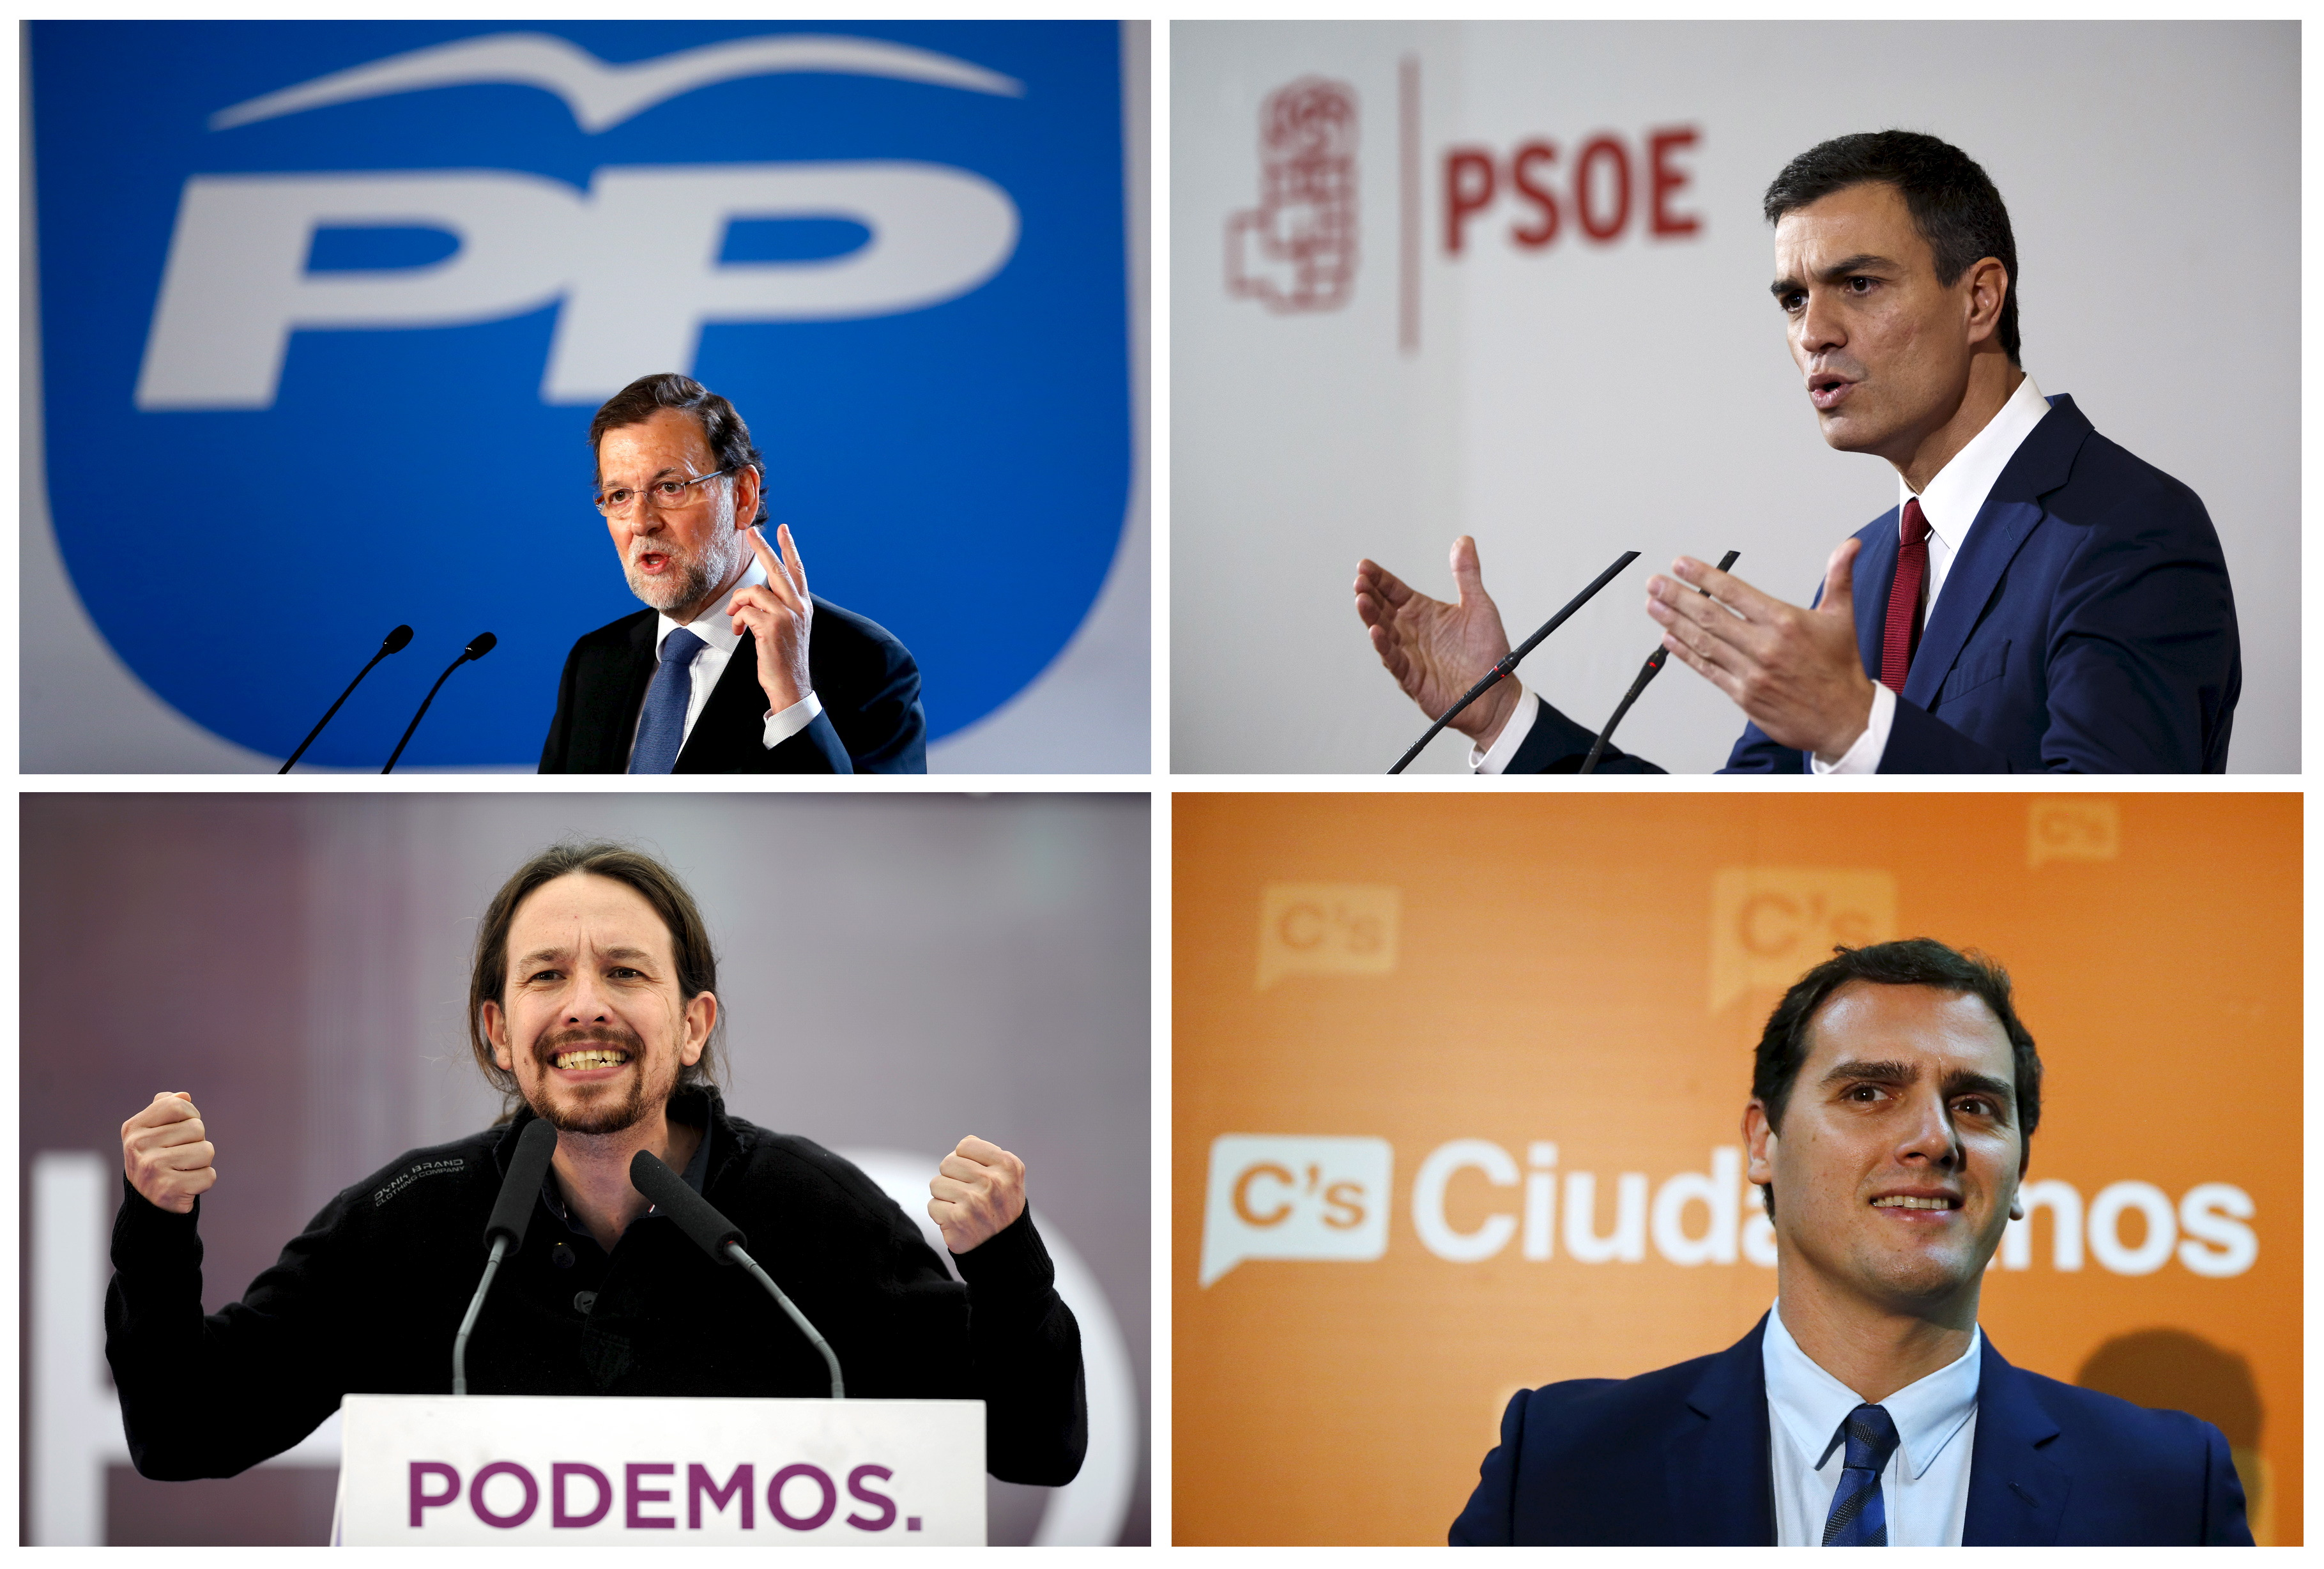 A combination of file pictures shows (clockwise from top L) Spain's Prime Minister Mariano Rajoy in Barcelona, Spain, January 31, Spain's opposition socialist party PSOE leader and election candidate Pedro Sanchez in Madrid, Spain, October 28, Spain's Ciudadanos party leader and election candidate Albert Rivera in Madrid, Spain, October 27, and Spain's Podemos (We Can) party leader and election candidate Pablo Iglesias in Oviedo, Spain, May 17. Spain's ruling People's Party would win a general election with 29.1 percent of the vote if it was held today, extending an earlier poll lead of 28.2 percent, an official survey showed. However, support for the Socialist Party (PSOE) also rose to 25.3 percent from 24.9 percent in the last Sociological Research Centre (CIS) poll in August, putting it in a position to potentially form a government coalition with newcomer party Ciudadanos after a general election on Dec. 20. Ciudadanos climbed to 14.7 percent from 11.1 percent. Leftist Podemos, which came second in the same survey earlier this year and was seen as a potential election winner, is seen falling to fourth place at 10.8 percent from 15.7 percent in August. REUTERS/Albert Gea/Paul Hanna/Eloy Alonso/Andrea Comas      TPX IMAGES OF THE DAY      - RTX1UVV1